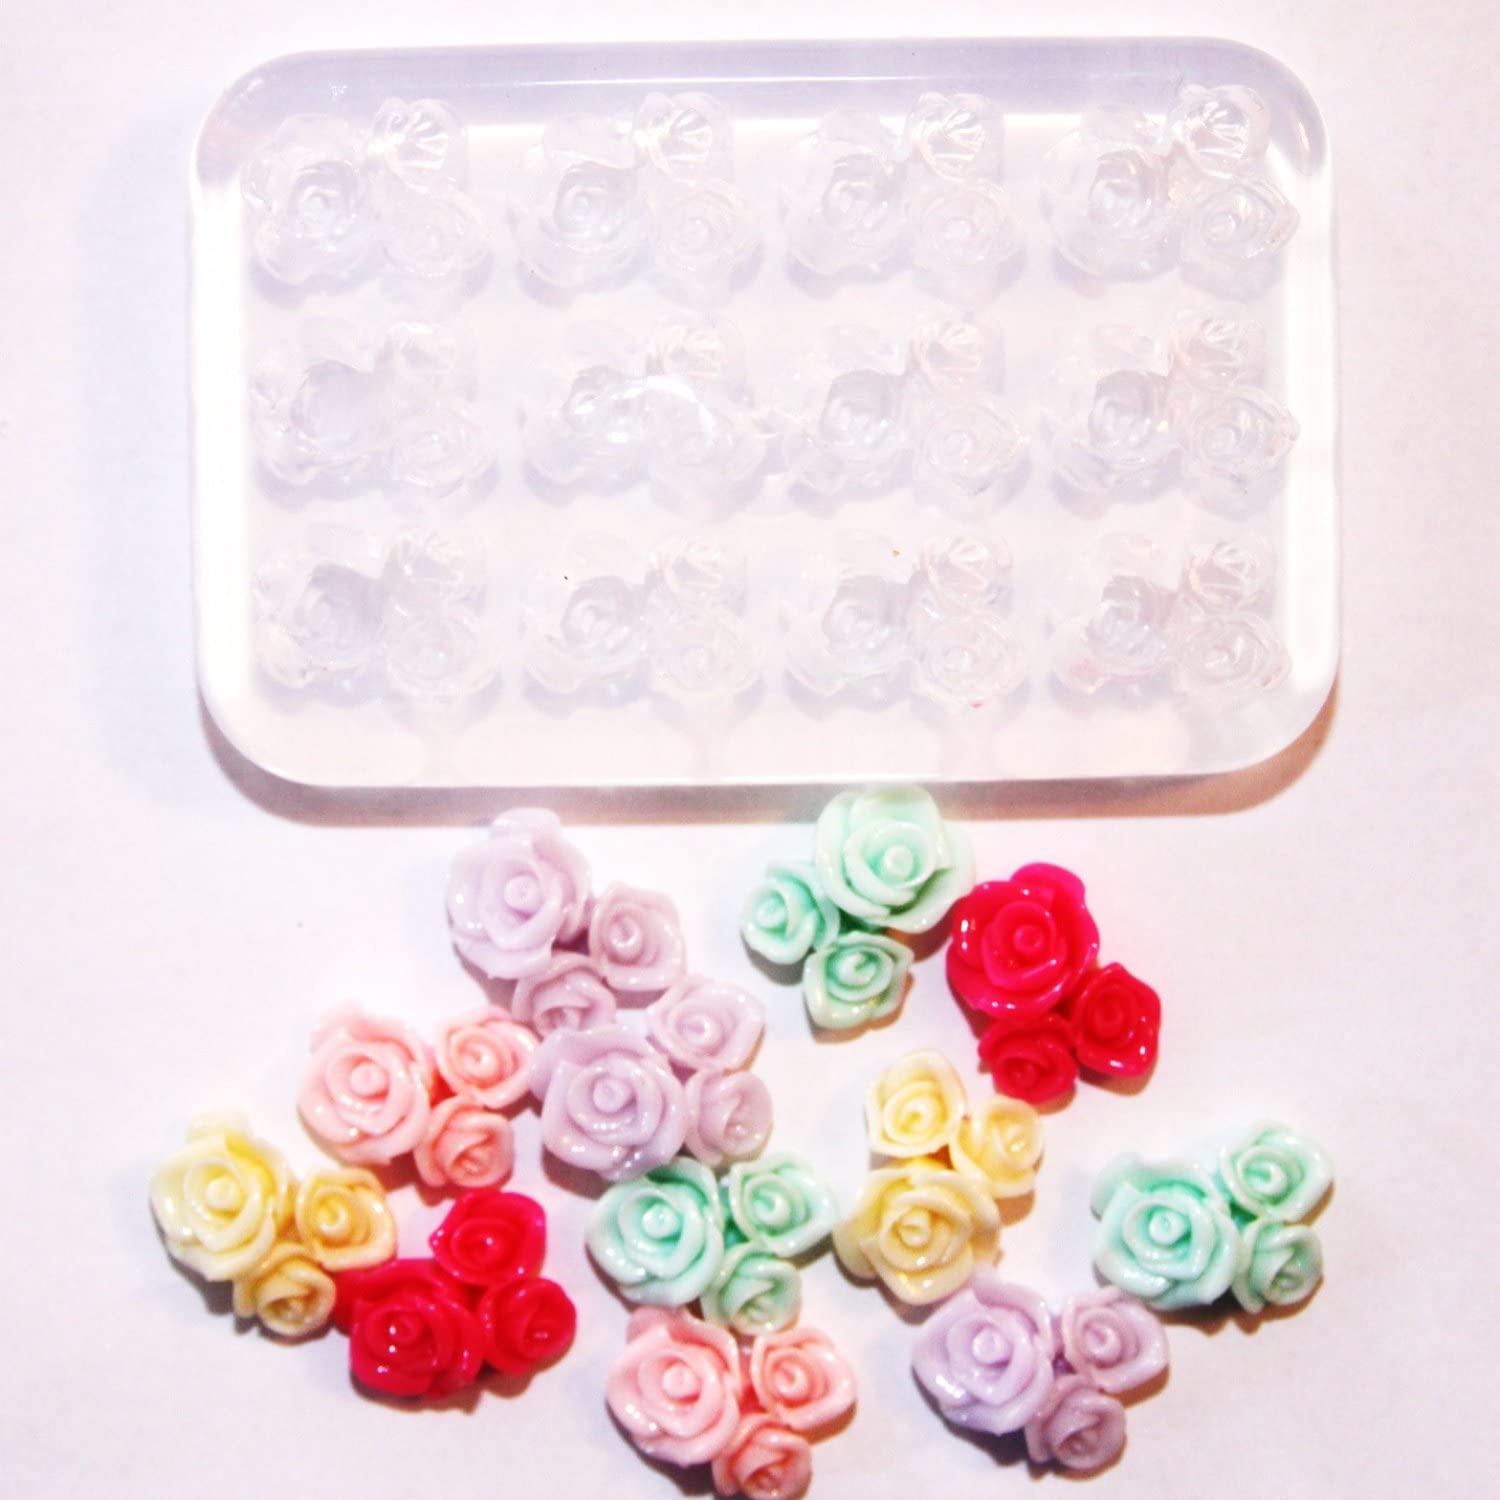 Clear silicone rose flower mold.For stud earrings,bracelet,pendant,Scrapbooking for phoneweddingcraft.1pc .Free USA shipping. 8-03